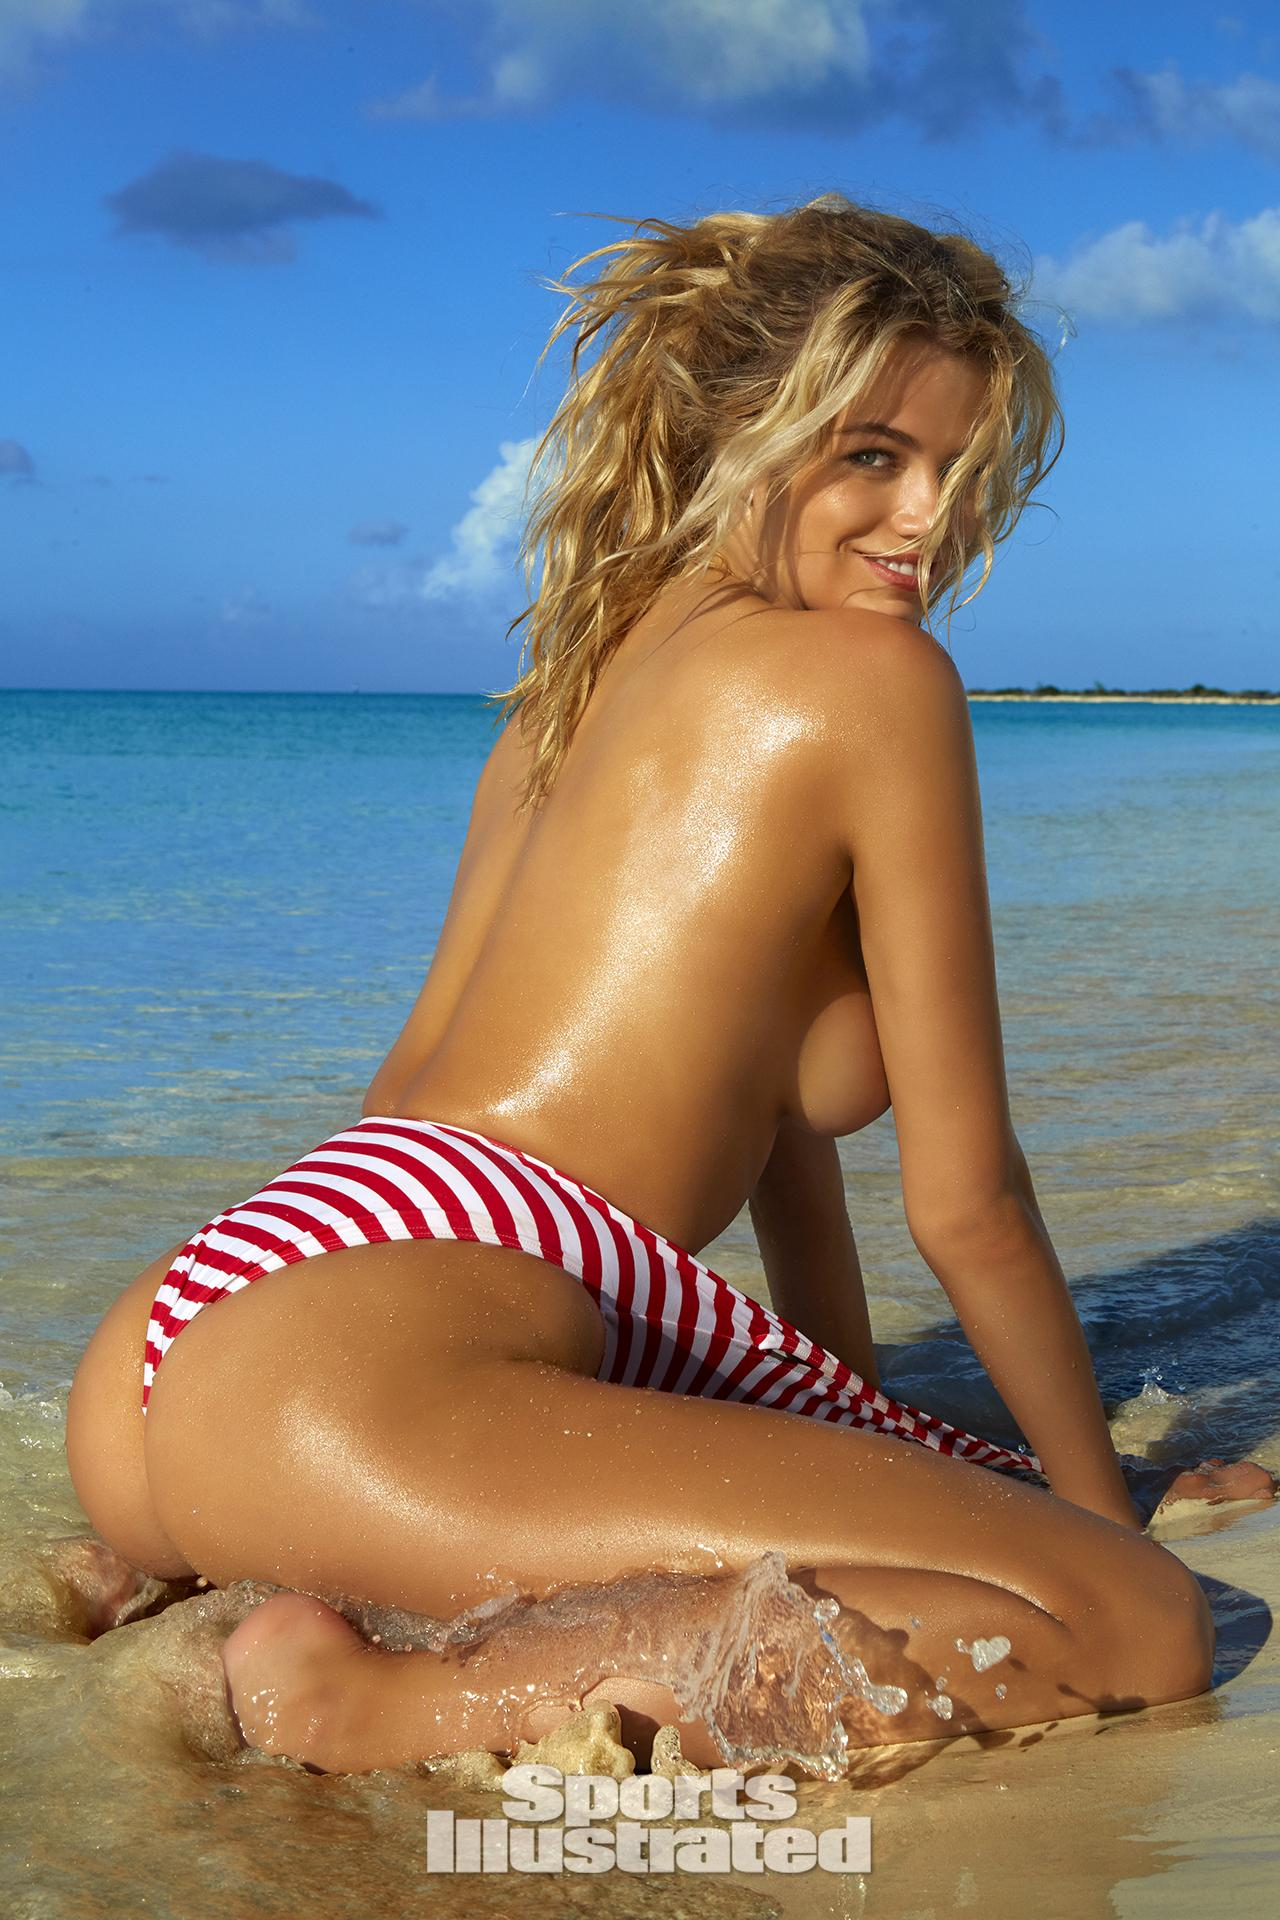 Hailey Clauson was photographed by James Macari in Turks & Caicos. Swimsuit by Gnash Swim.